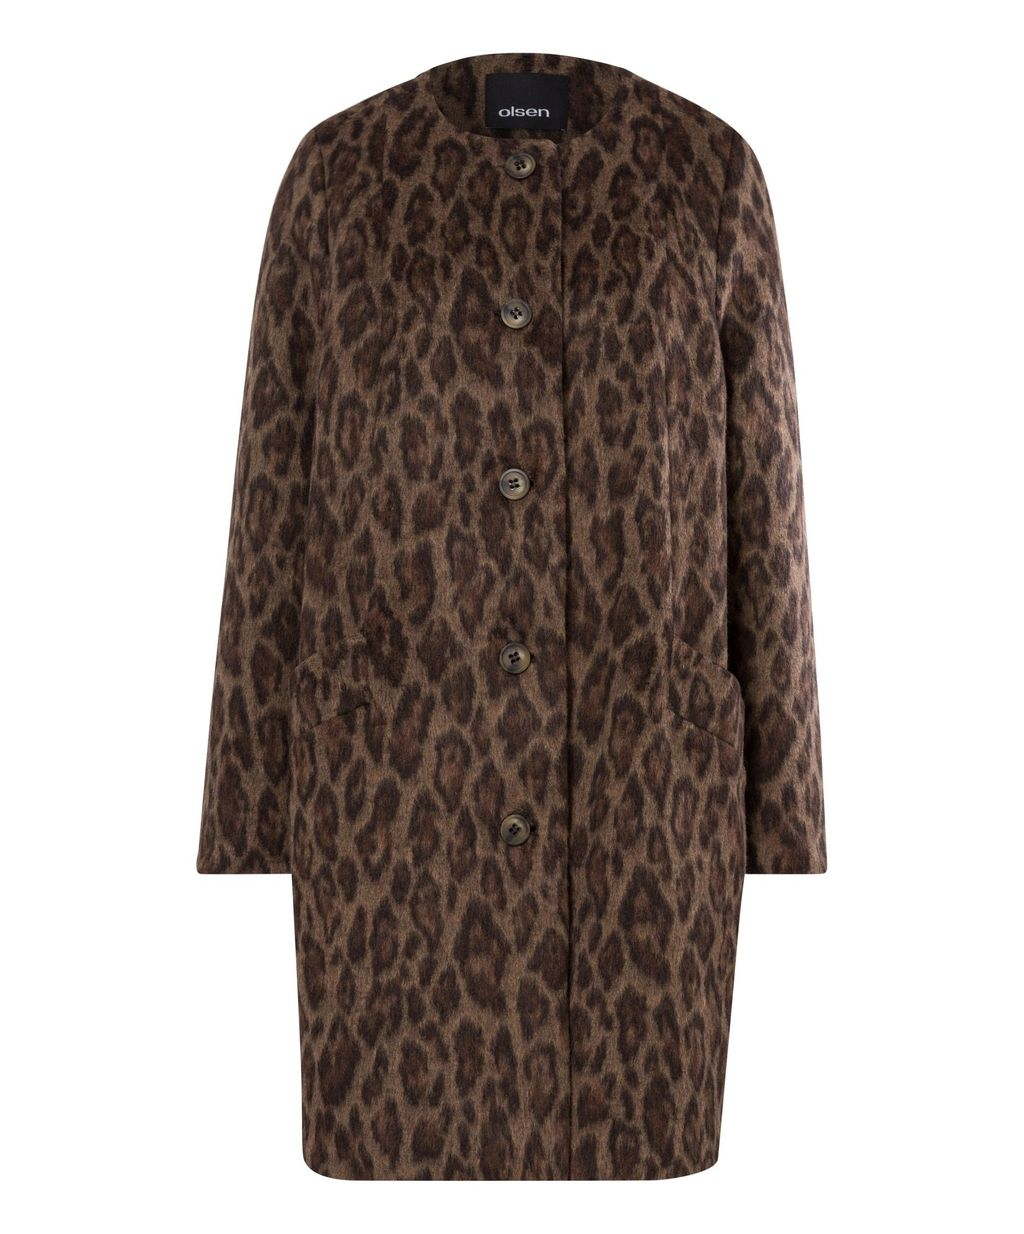 Animal Print Coat, Beige - collar: round collar/collarless; style: single breasted; length: mid thigh; predominant colour: chocolate brown; secondary colour: taupe; occasions: casual, creative work; fit: straight cut (boxy); fibres: wool - mix; sleeve length: long sleeve; sleeve style: standard; collar break: high; pattern type: fabric; pattern: animal print; texture group: woven bulky/heavy; season: a/w 2016; trends: opulent prints